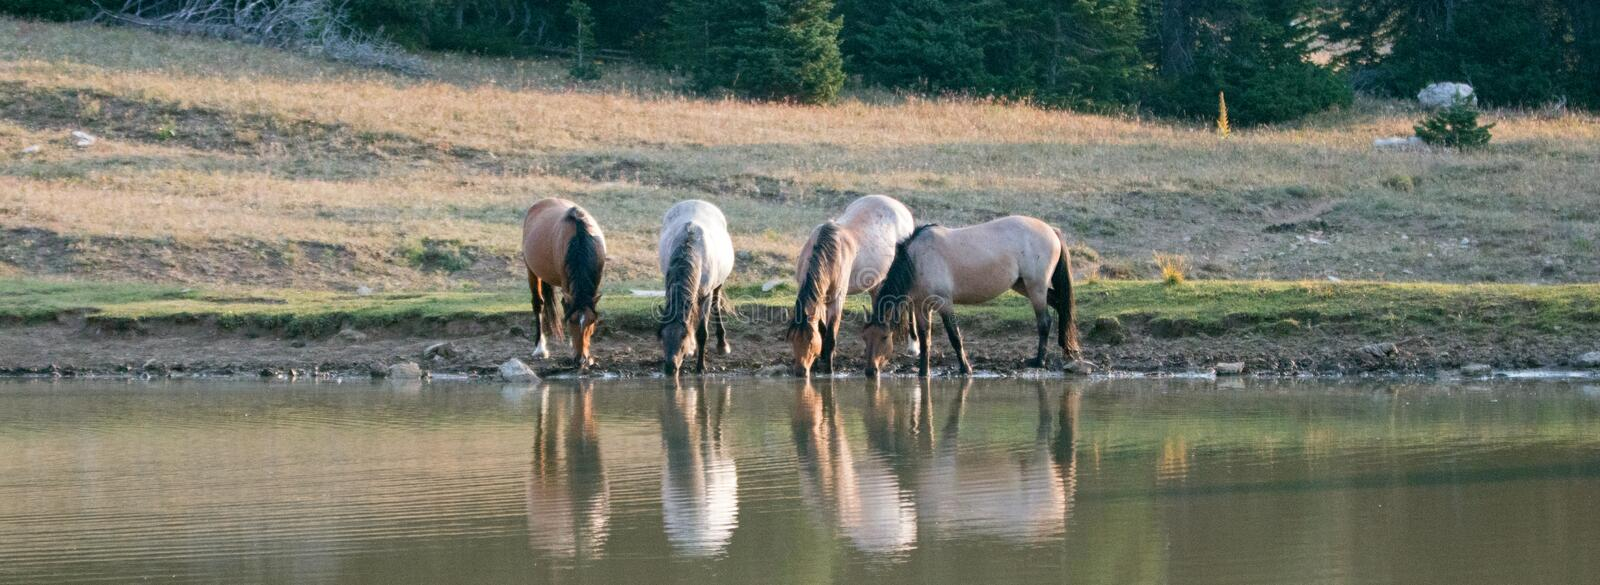 Small band / herd of wild horses drinking at the waterhole in the Pryor Mountains Wild Horse Range in Montana. United States royalty free stock photography